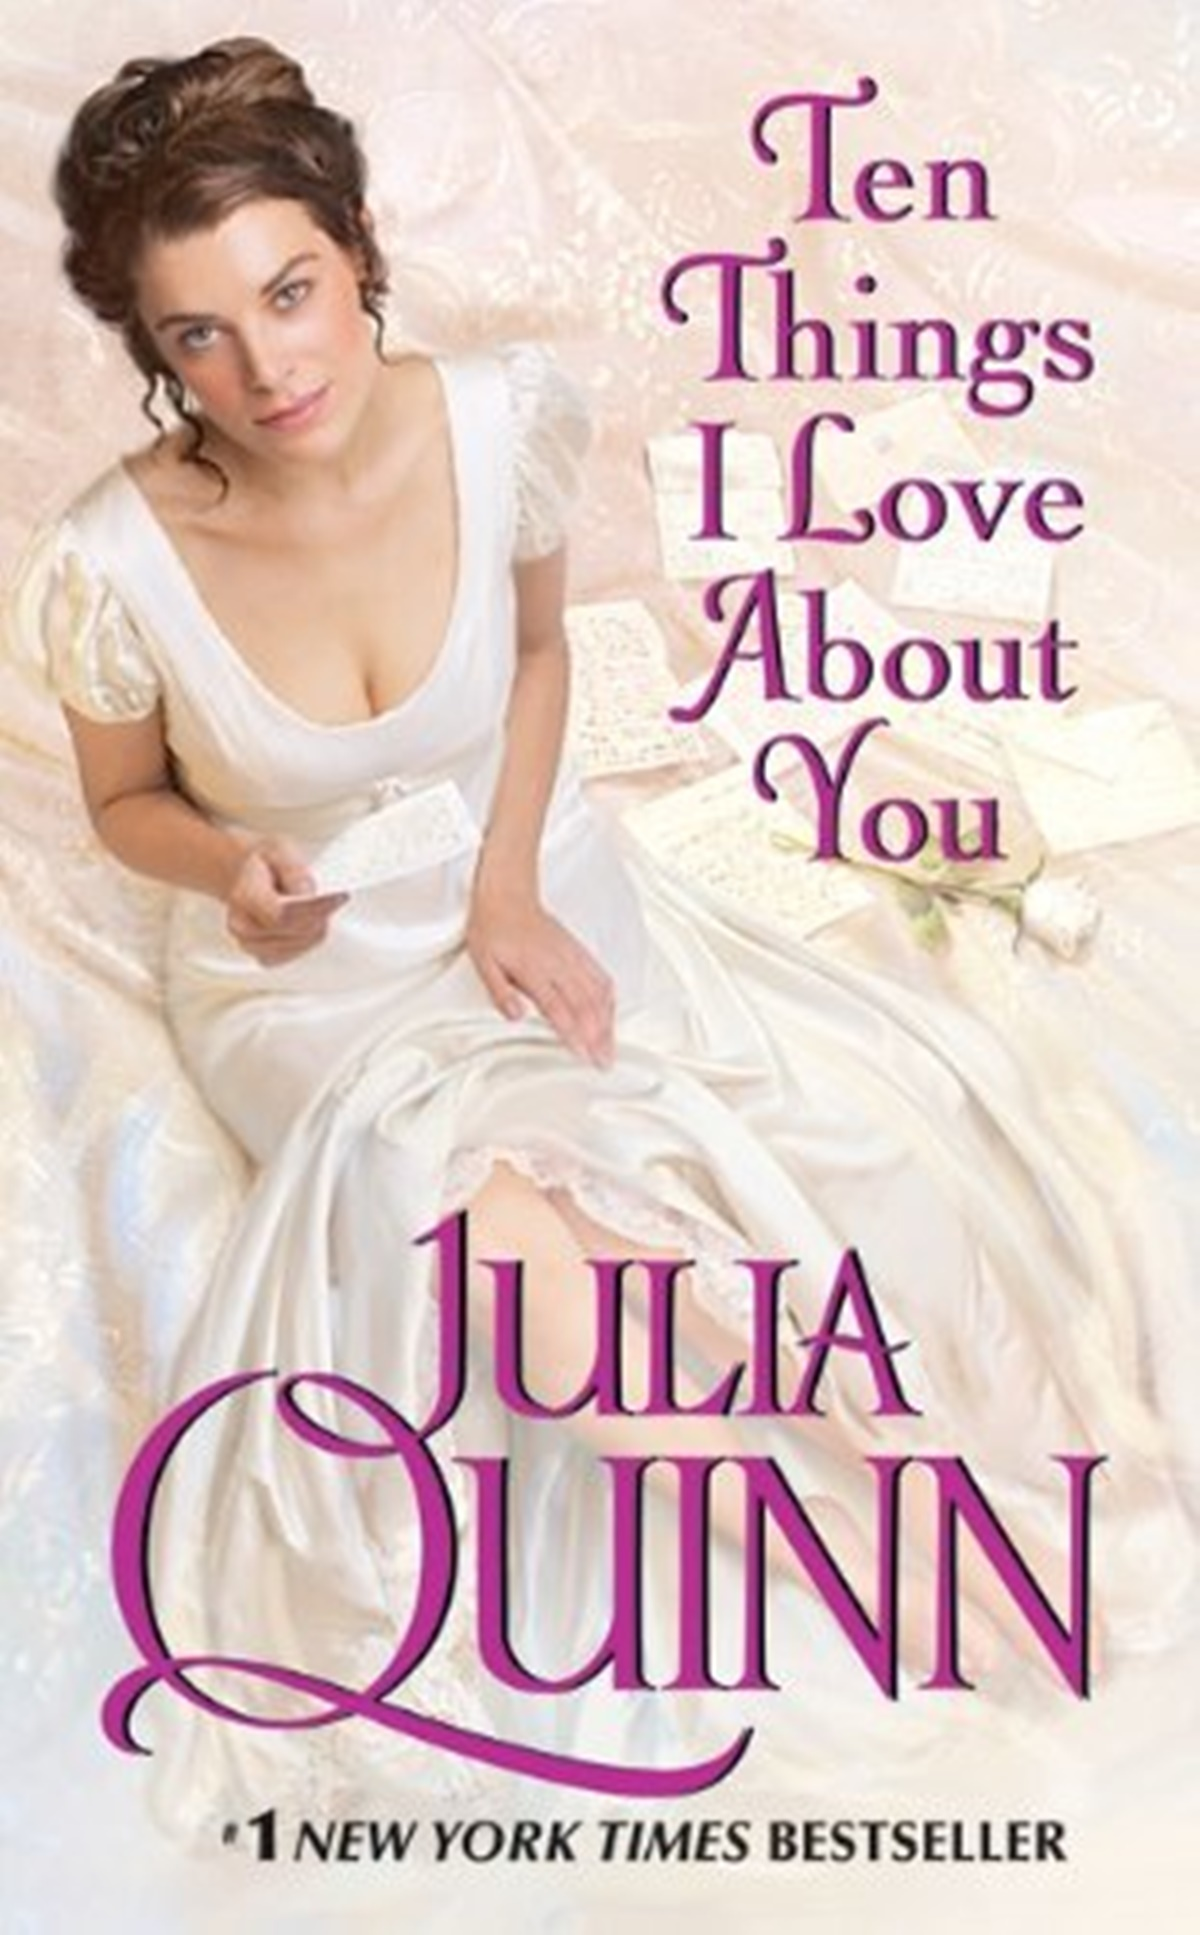 Julia Quinn Books, cover of Ten Things I Love About You by Julia Quinn, books